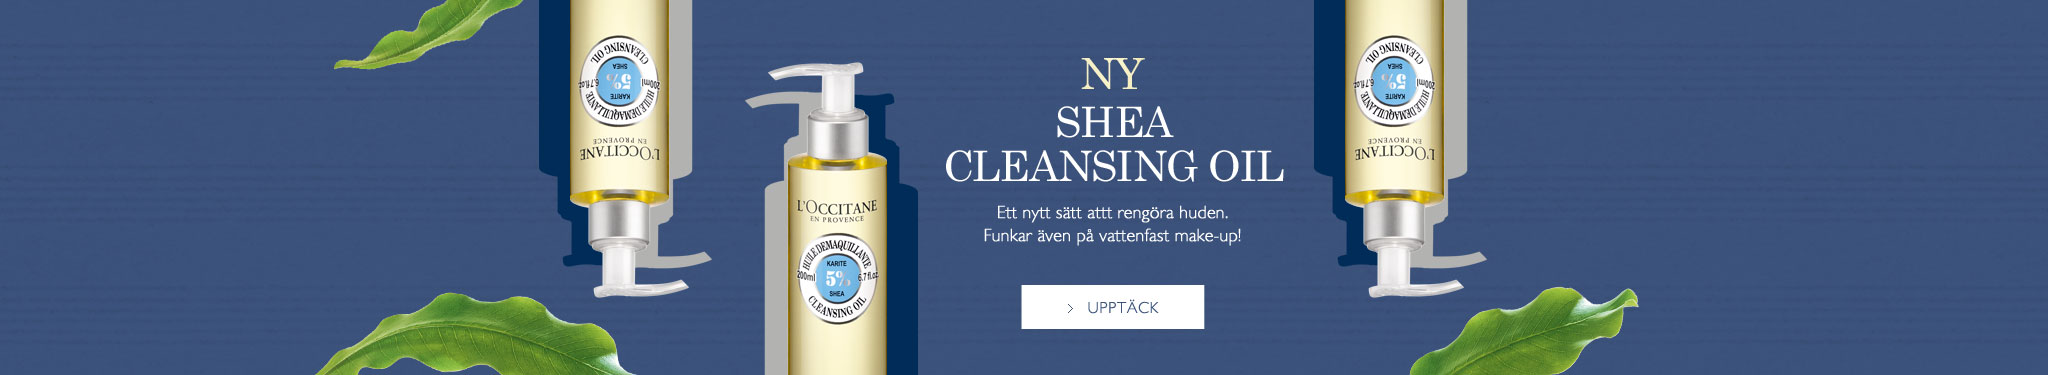 Ny Shea Cleansing Oil